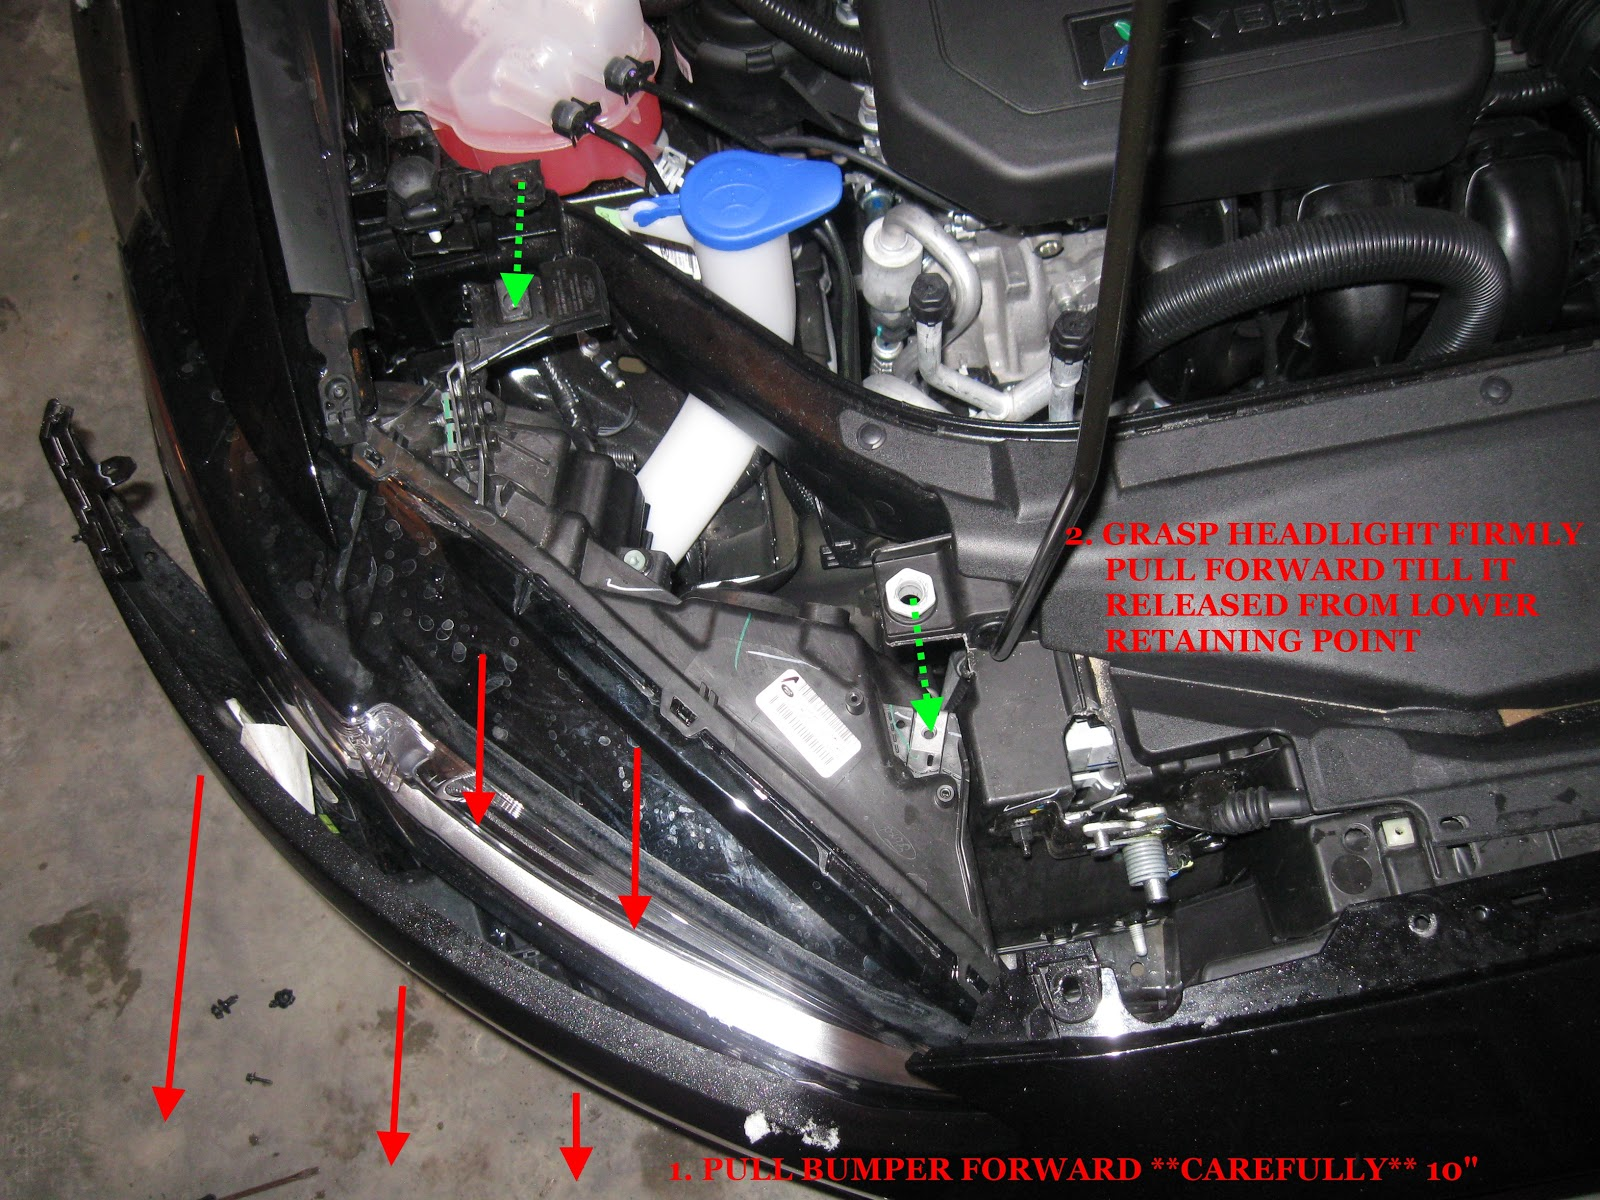 Ford Fusion Hid Kit Wiring Diagram Another Blog About Conversion 2013 Hybrid Se Mpg Install Special Post Rh Fusionhybridmpg Blogspot Com